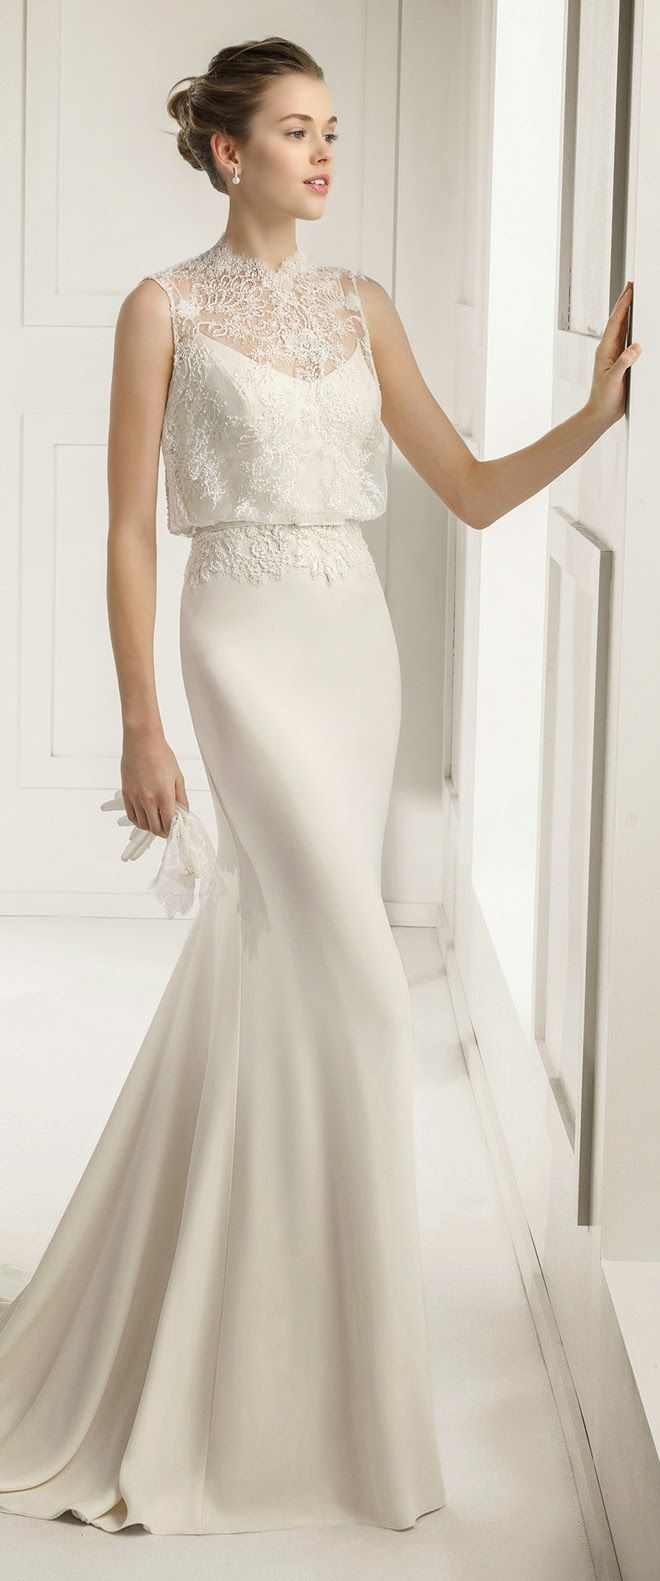 After wedding dress reception  Rosa Clara  Bridal Collection  Part   Discover more ideas